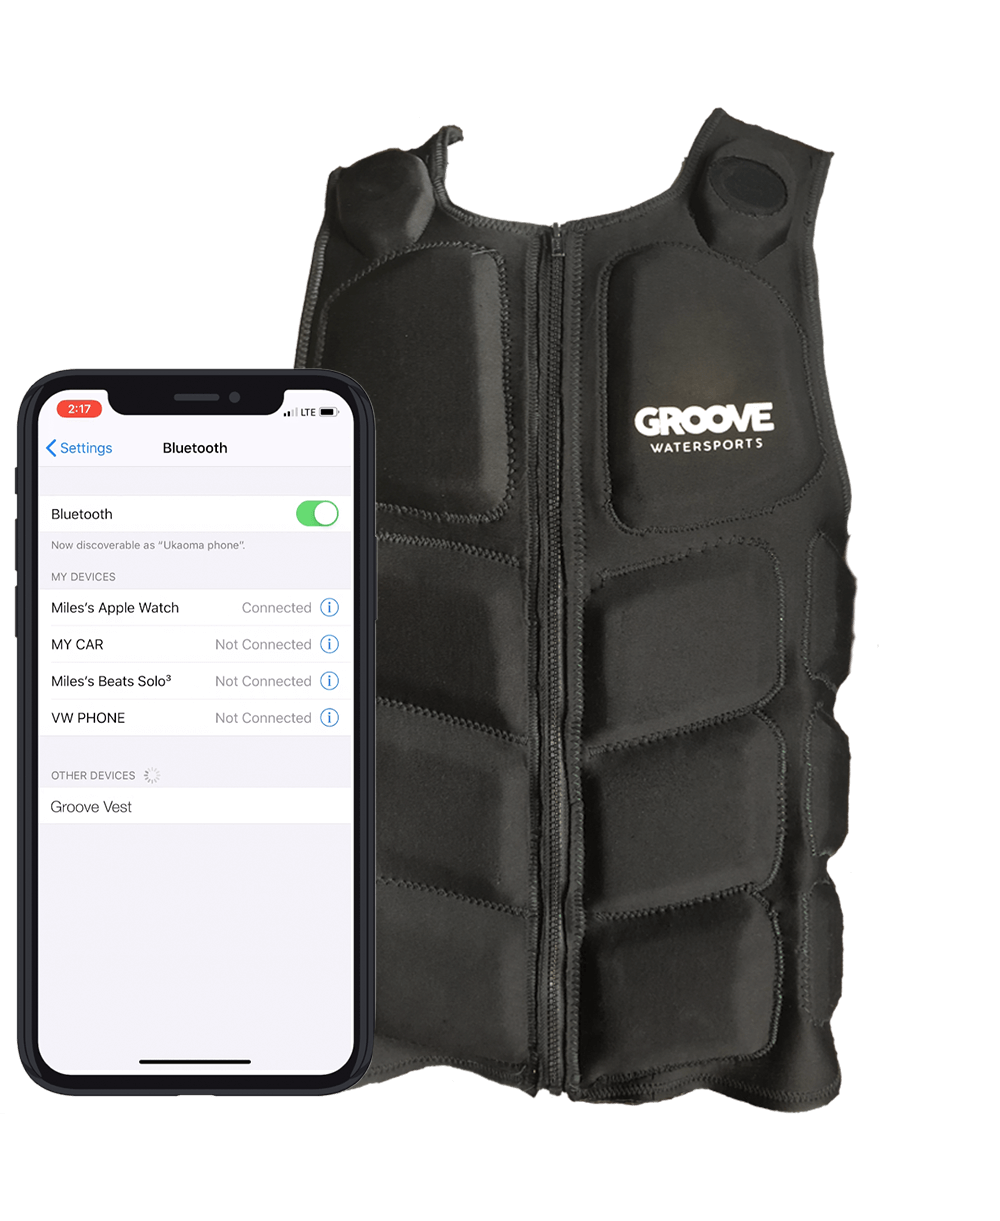 Groove-wastersports-vest-with-phone